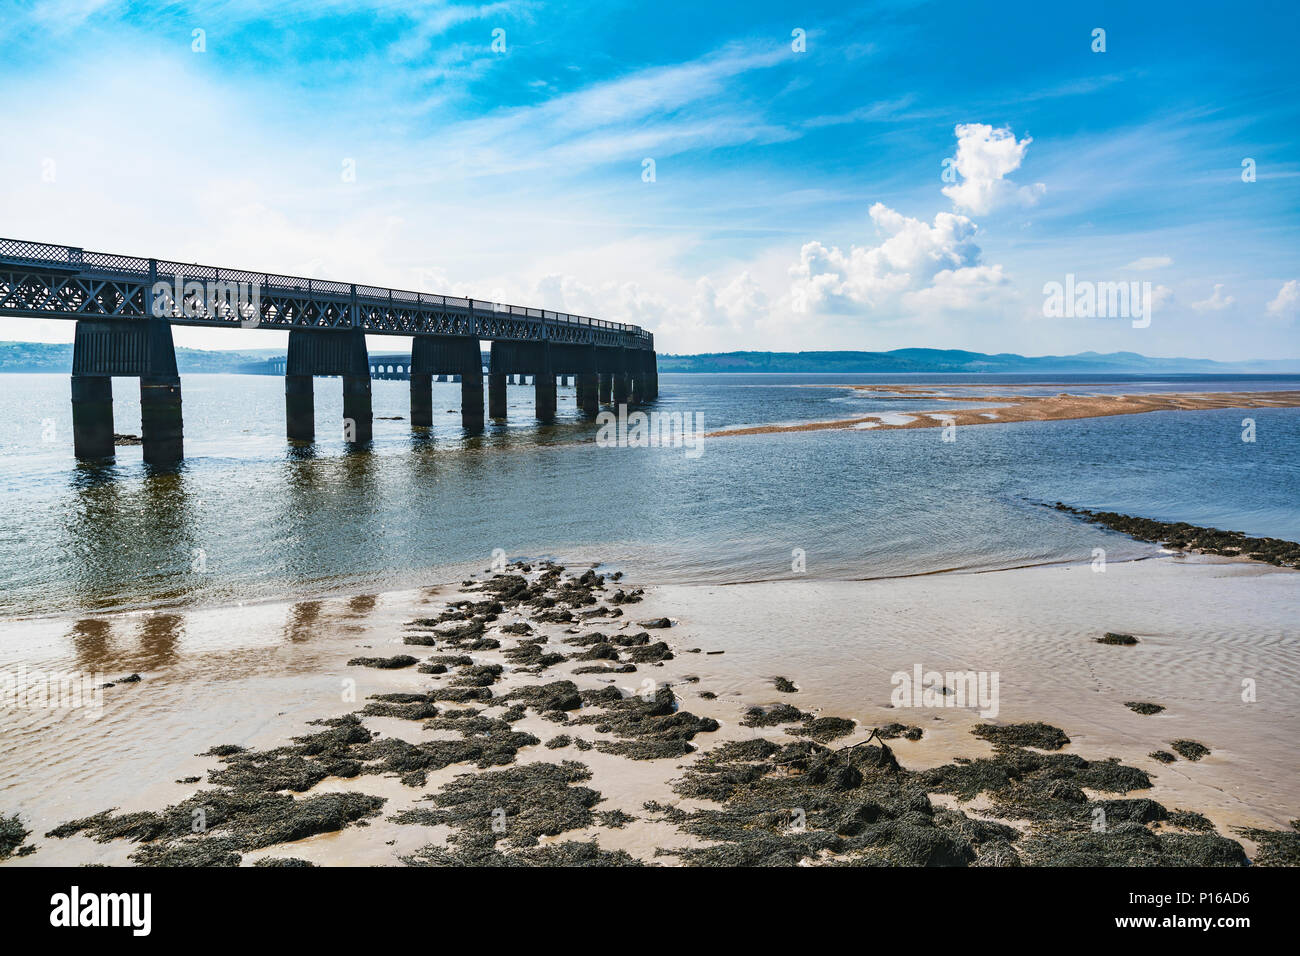 Panoramic view of the Tay Rail Bridge in Scotland. A railway bridge that spans the Firth of Tay, between the city of Dundee and Wormit. - Stock Image